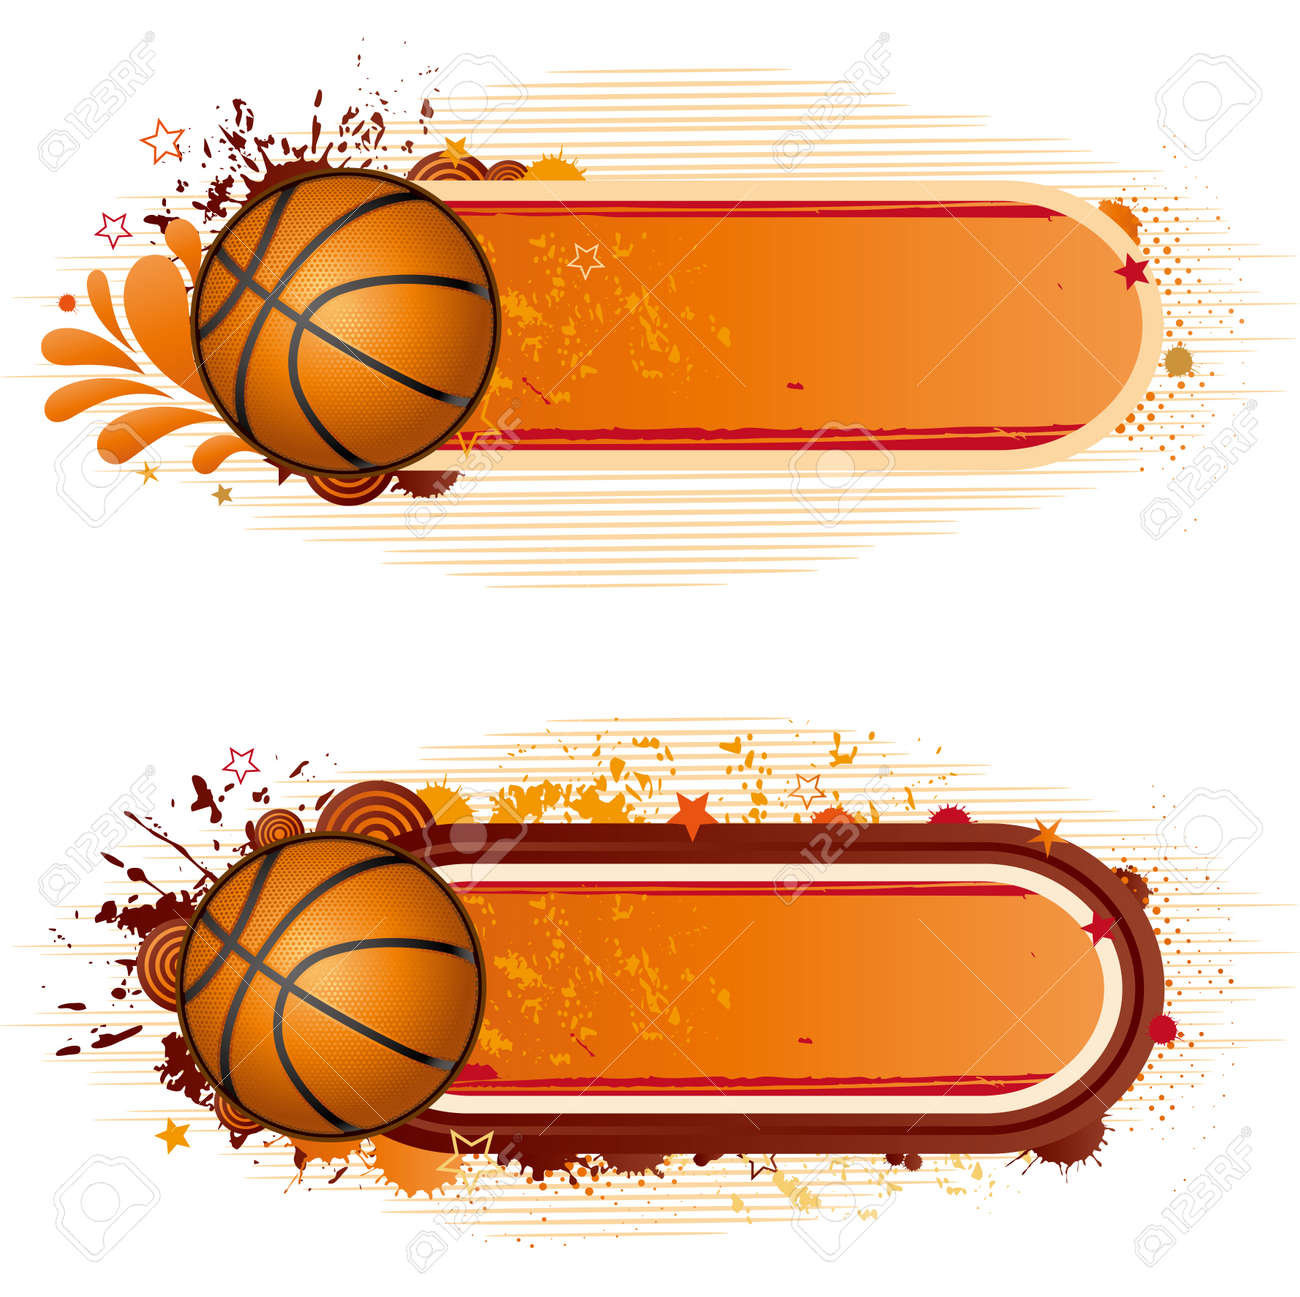 Basketball Border Templates